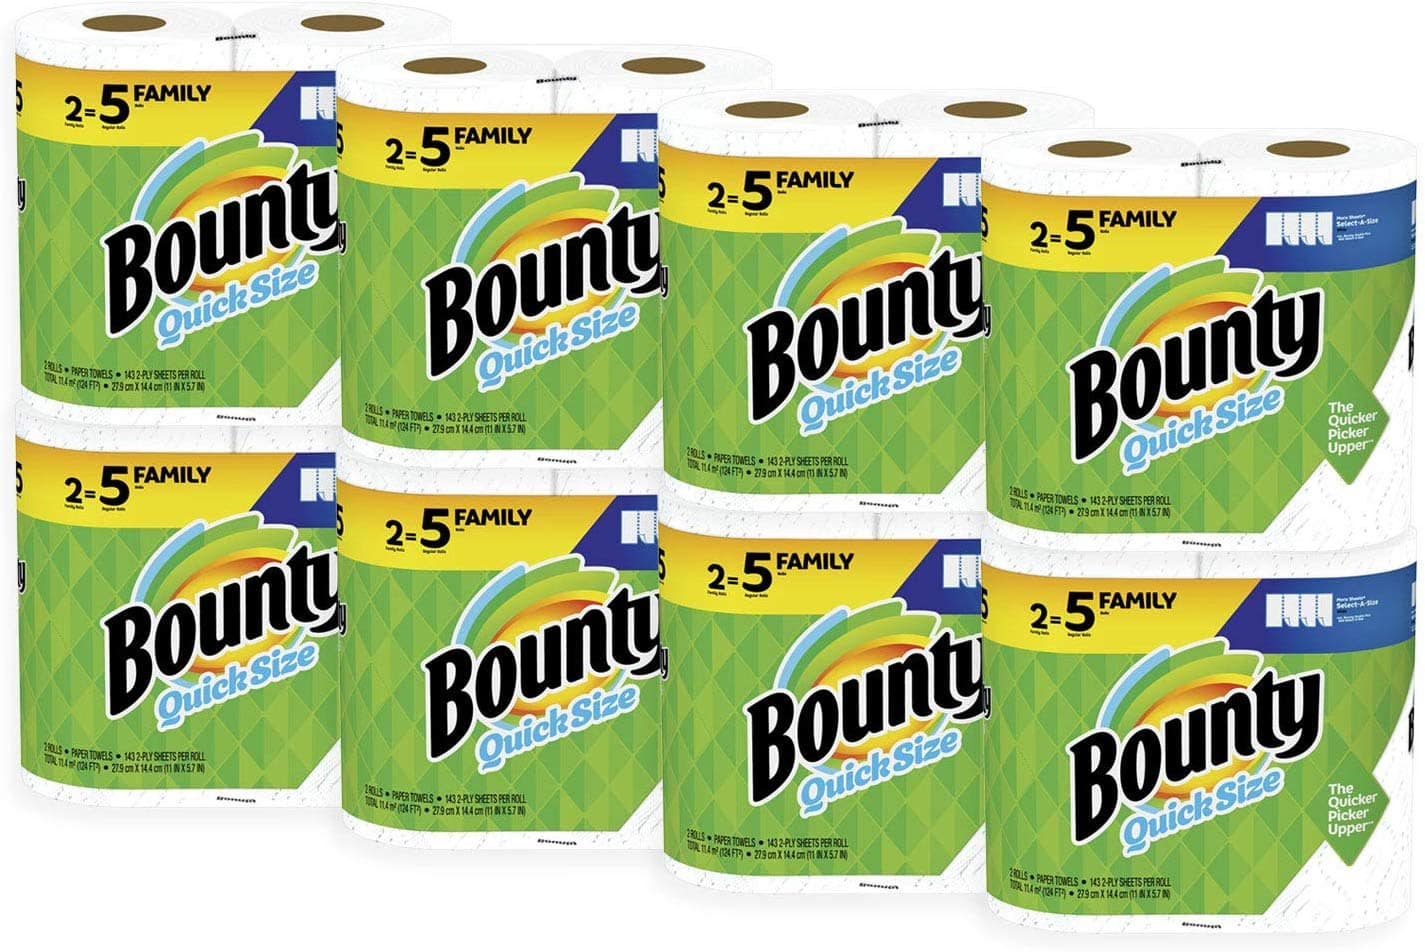 <Amazon Warehouse>  Bounty Quick-Size Paper Towels, White, Family Rolls, 16 Count (Equal to 40 Regular Rolls) 16.90 after 20% off.